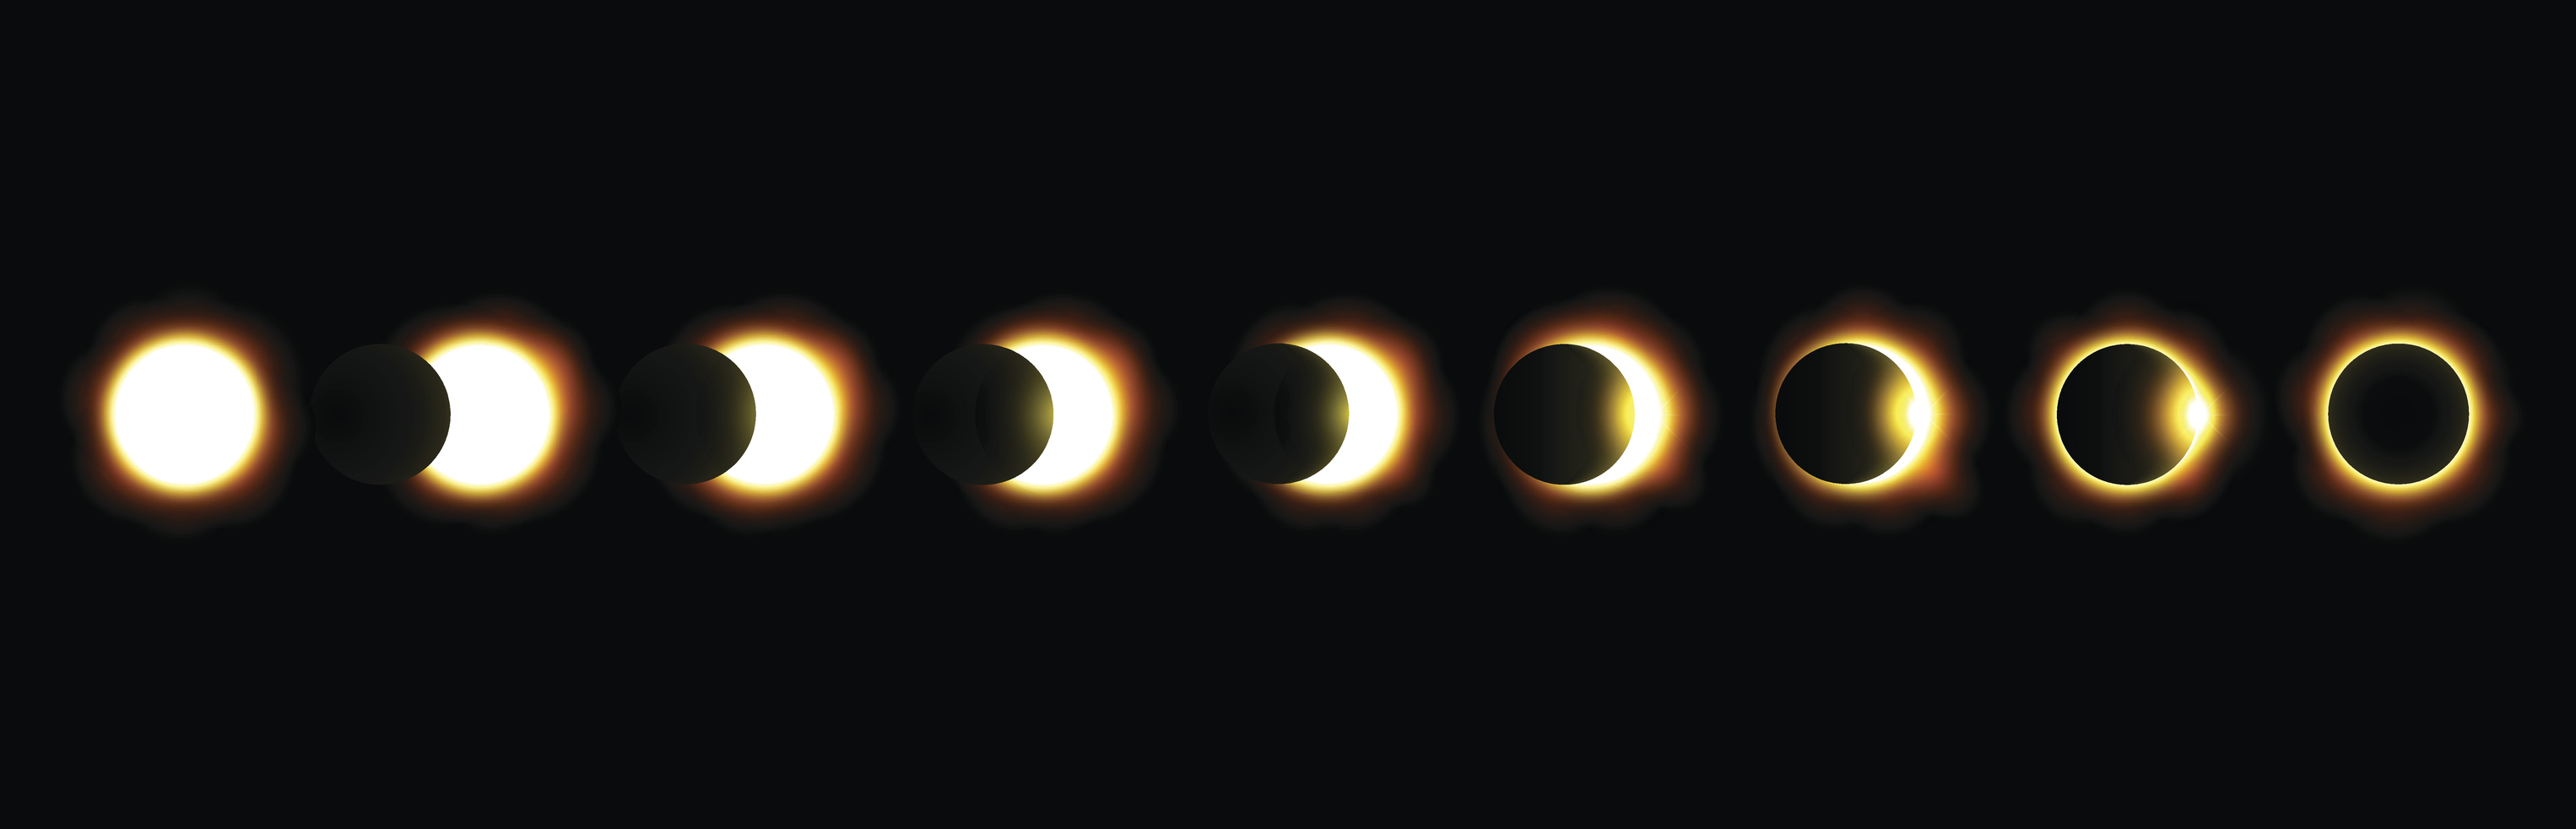 Eclipse viewing safety tips